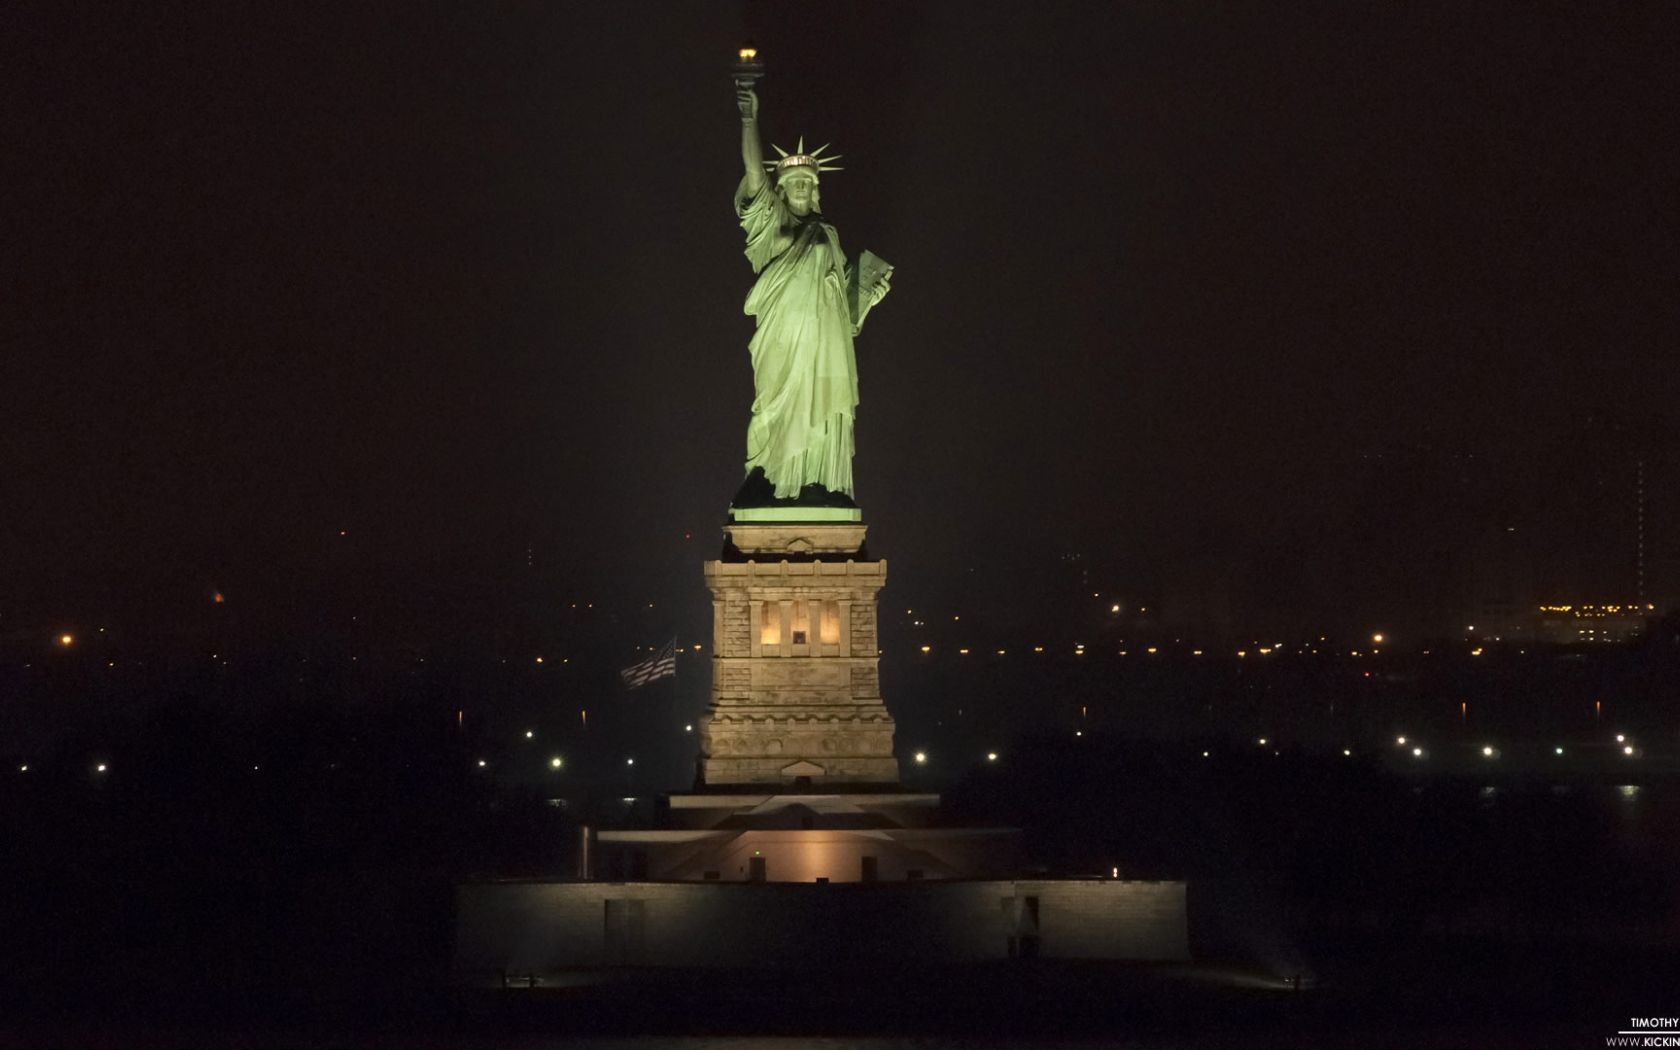 Statue Of Liberty At Night Wallpapers Top Free Statue Of Liberty At Night Backgrounds Wallpaperaccess